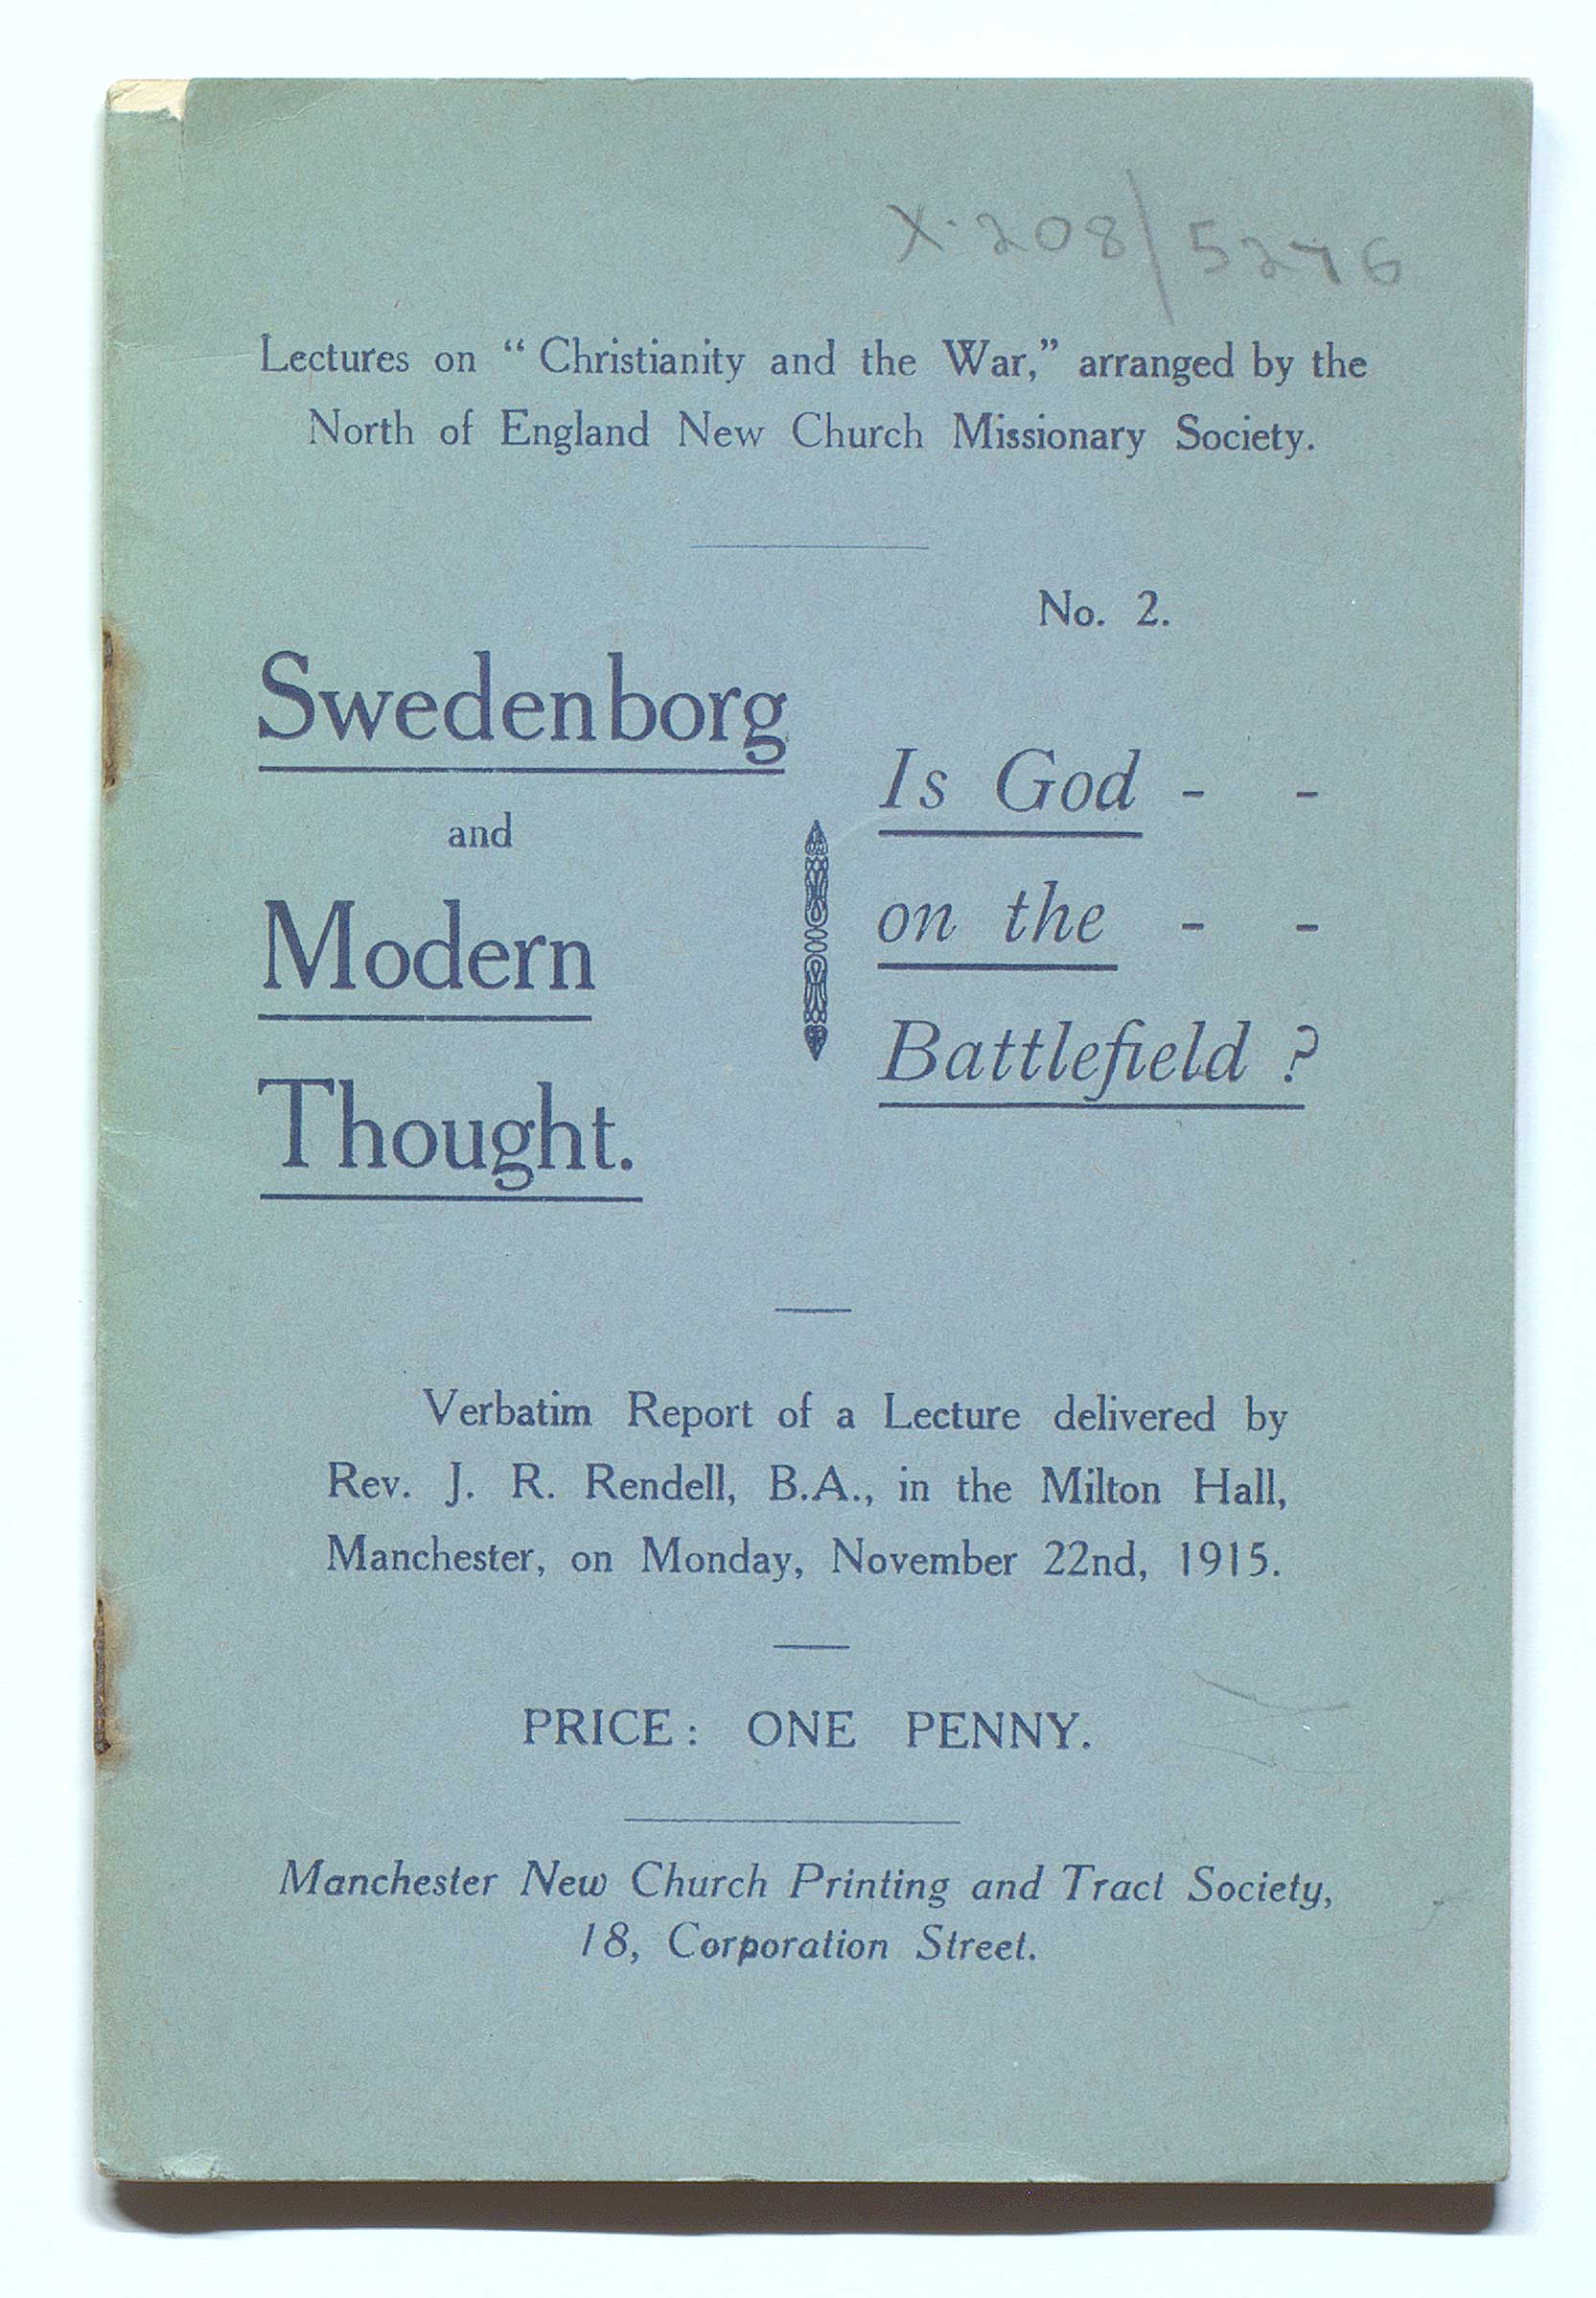 Is God on the Battlefield? Verbatim Report of a Lecture Delivered in the Milton Hall, Manchester, Monday, November 22nd, 1915.